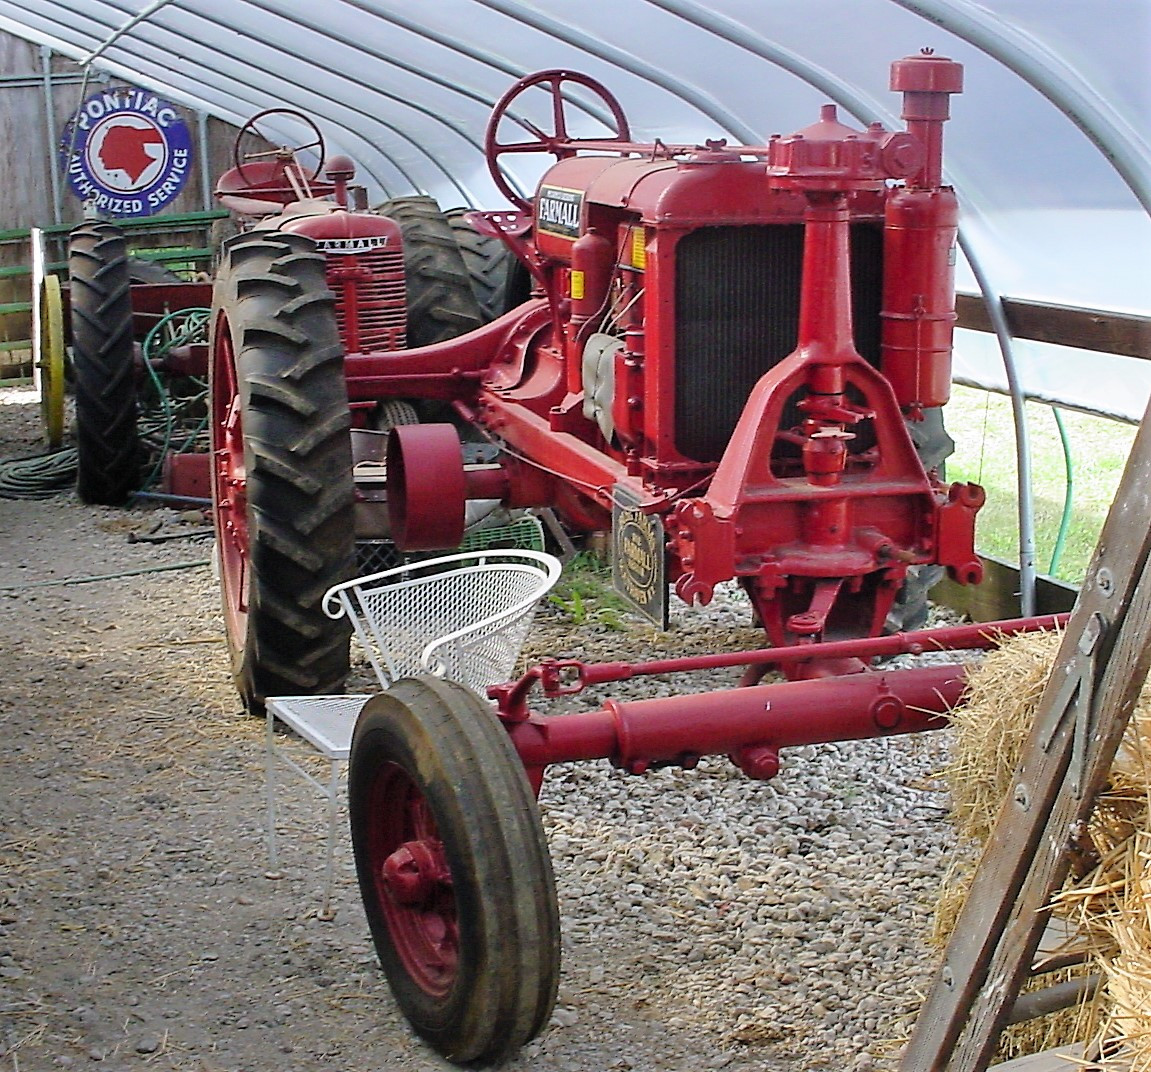 Two of Ron Bush's Farmall tractors